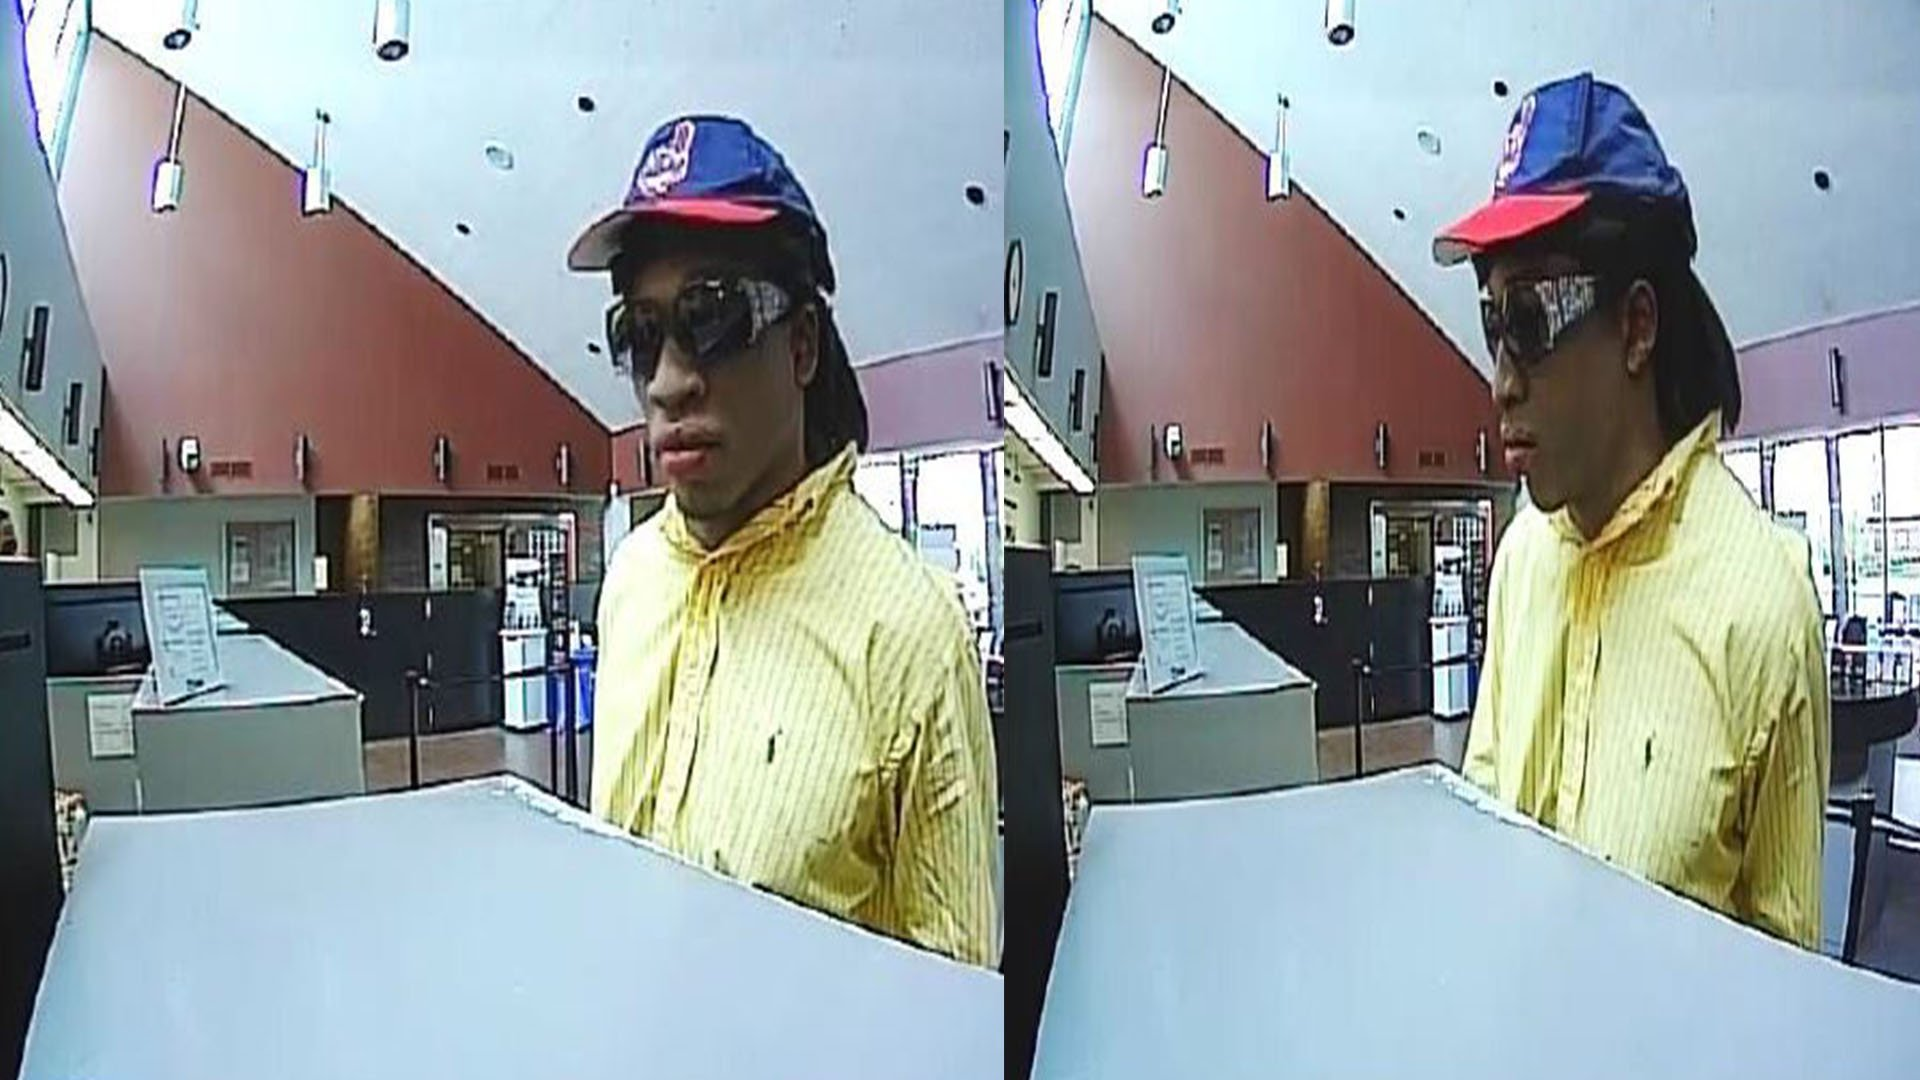 The St. Louis County Police Department is asking for the public's assistance with identifying a suspect who robbed a North County bank.(Credit: KMOV)